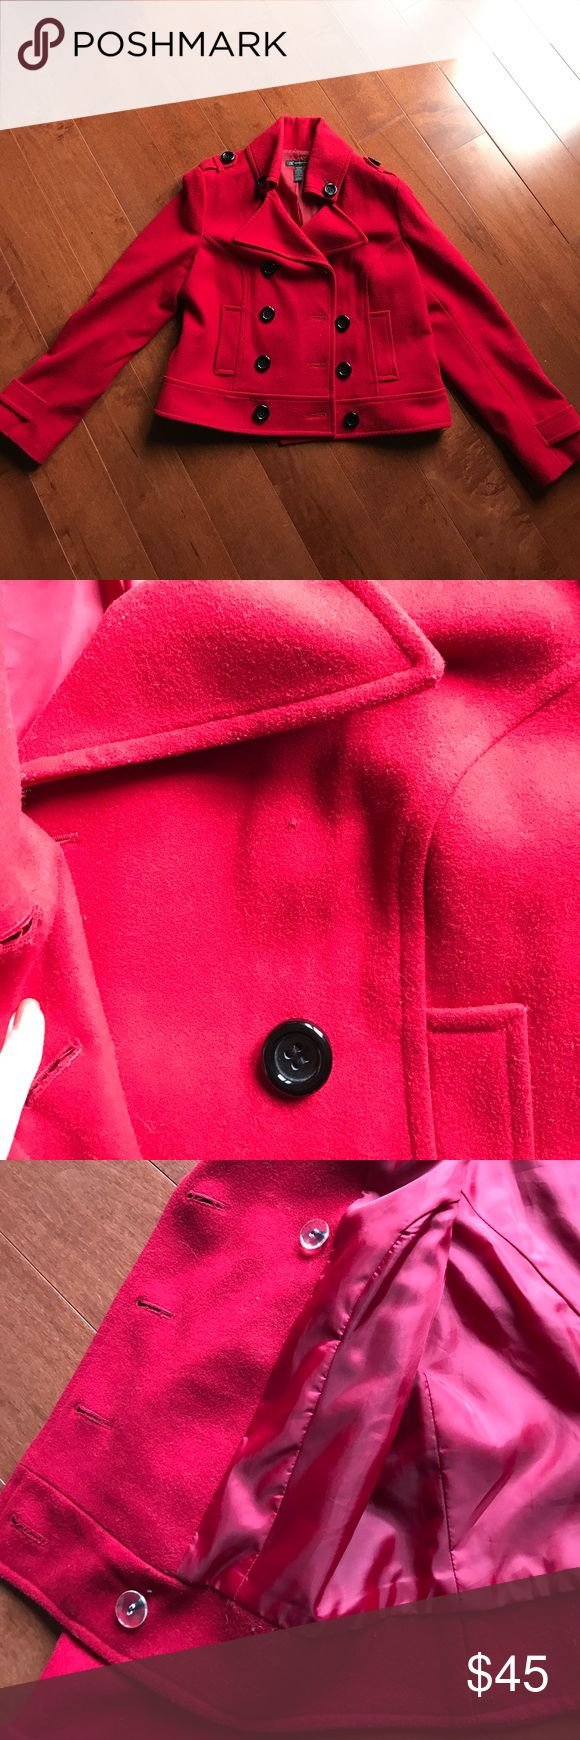 Red Pea Coat INC international concepts red Pea Coat. Missing one button (see picture). Cannot find button pack😑 price reflects flaw. Open to offers! INC International Concepts Jackets & Coats Pea Coats